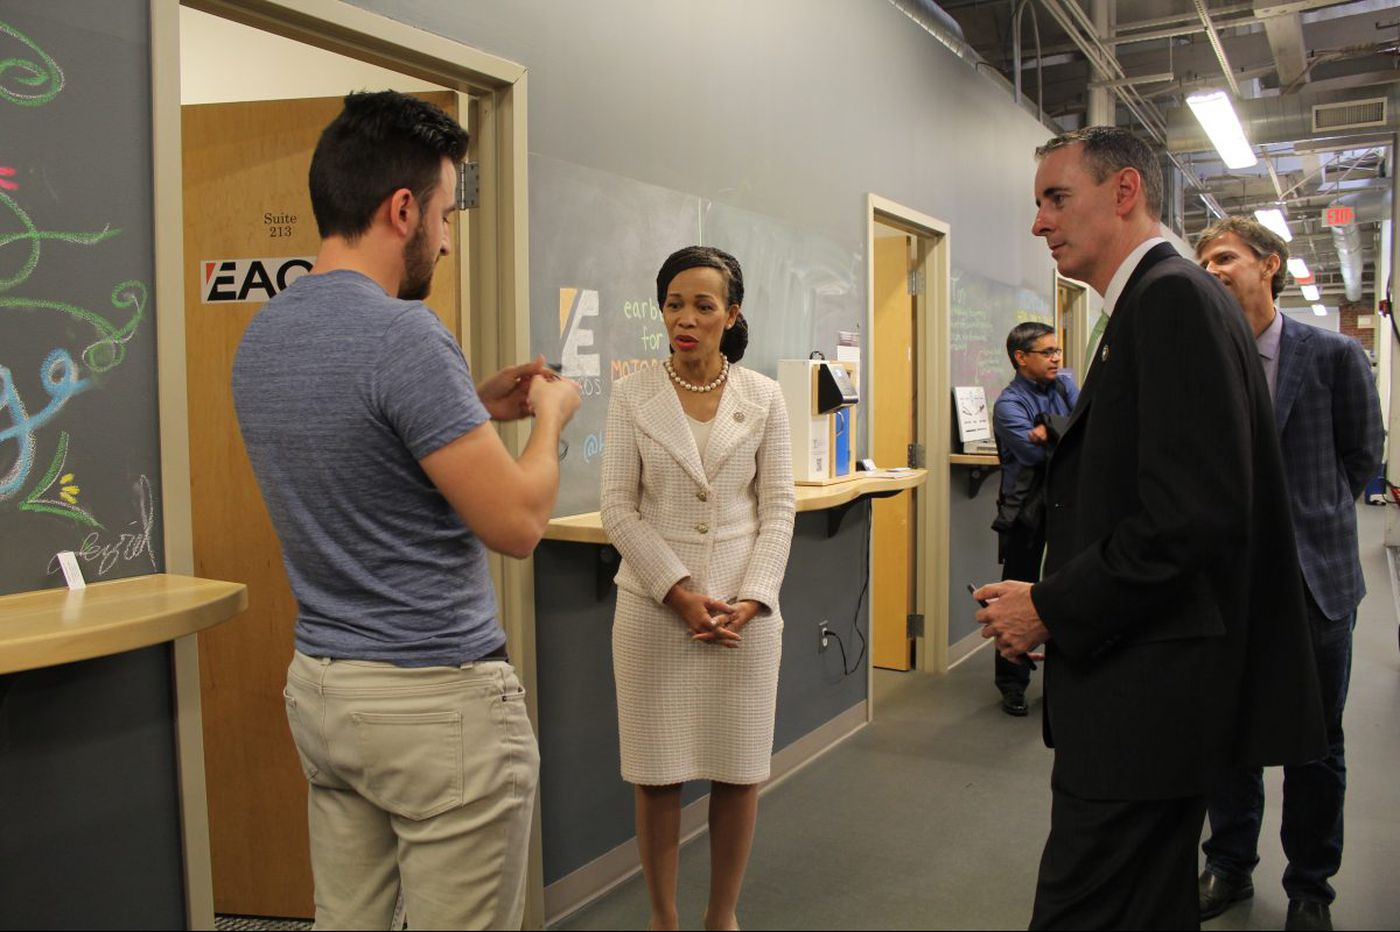 From Congress, a diverse pair boosts tech start-ups in S. Philly